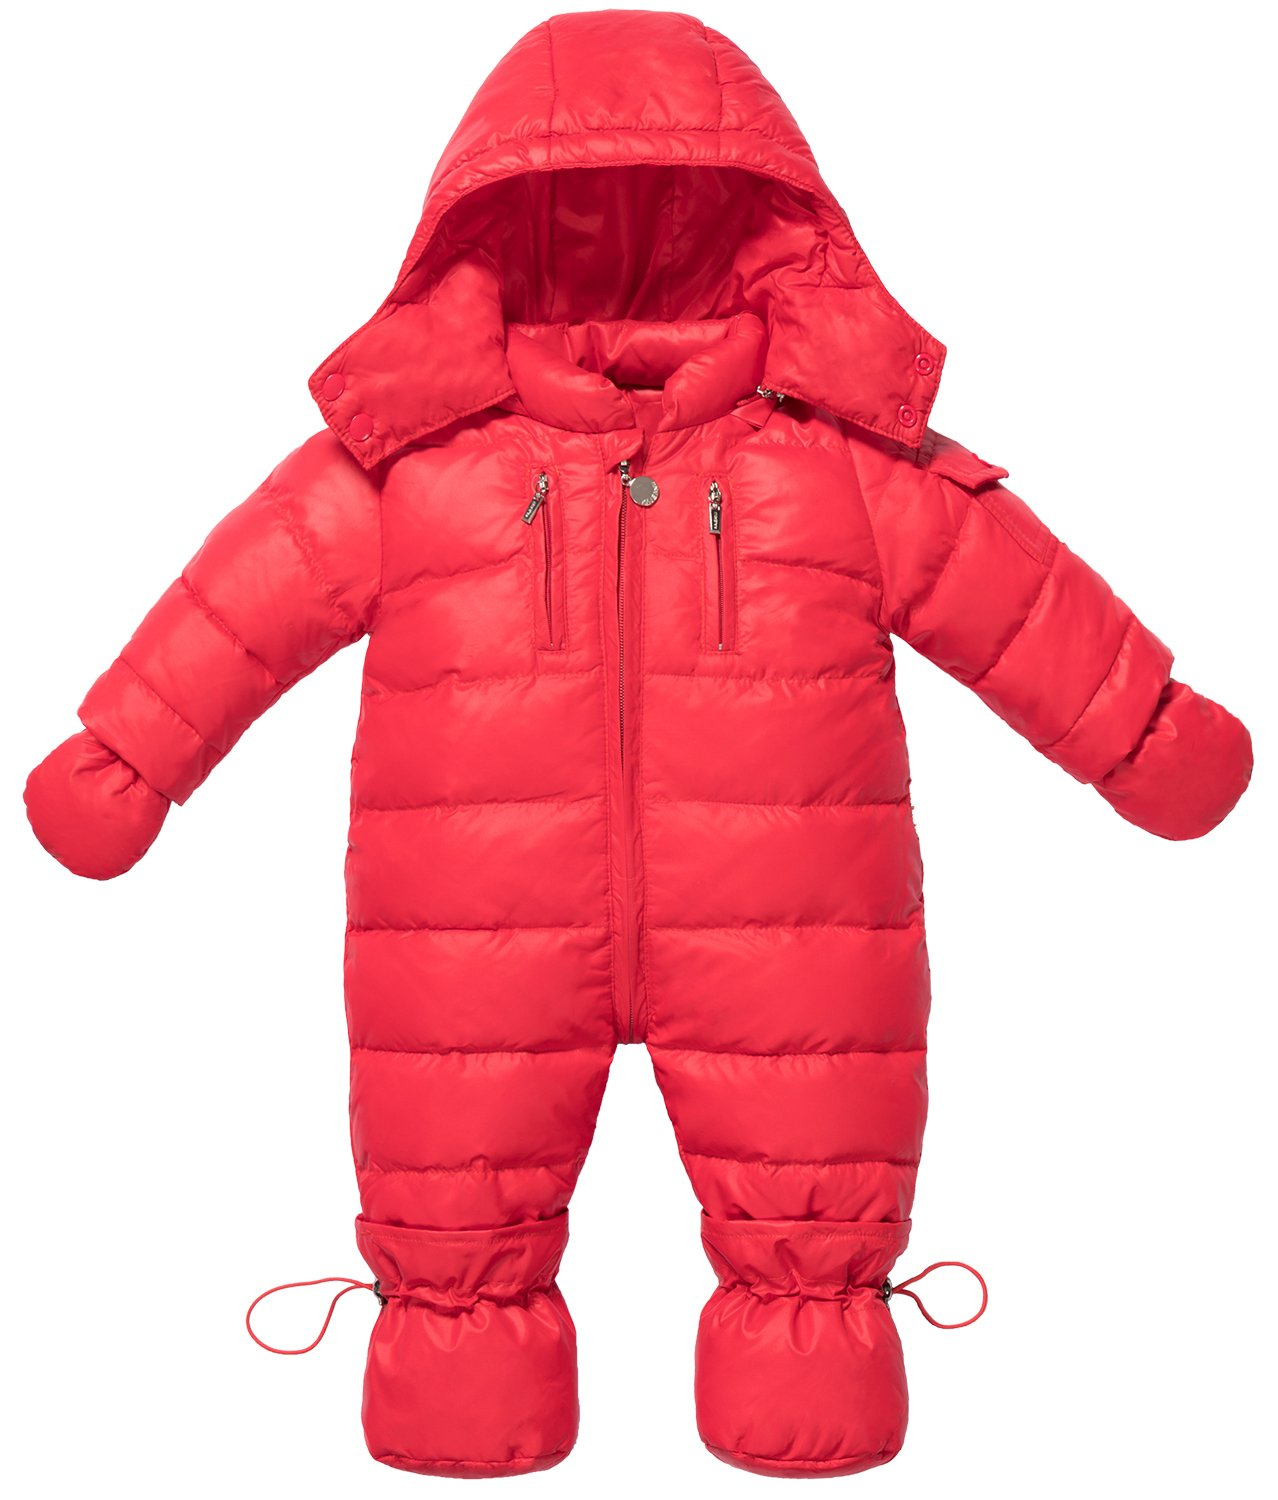 ZOEREA Infant Newborn Baby Hoodie Down Jacket Jumpsuit Pram Snuggly Snow Suit (Label 120/Age 12-18 Months, red) by ZOEREA